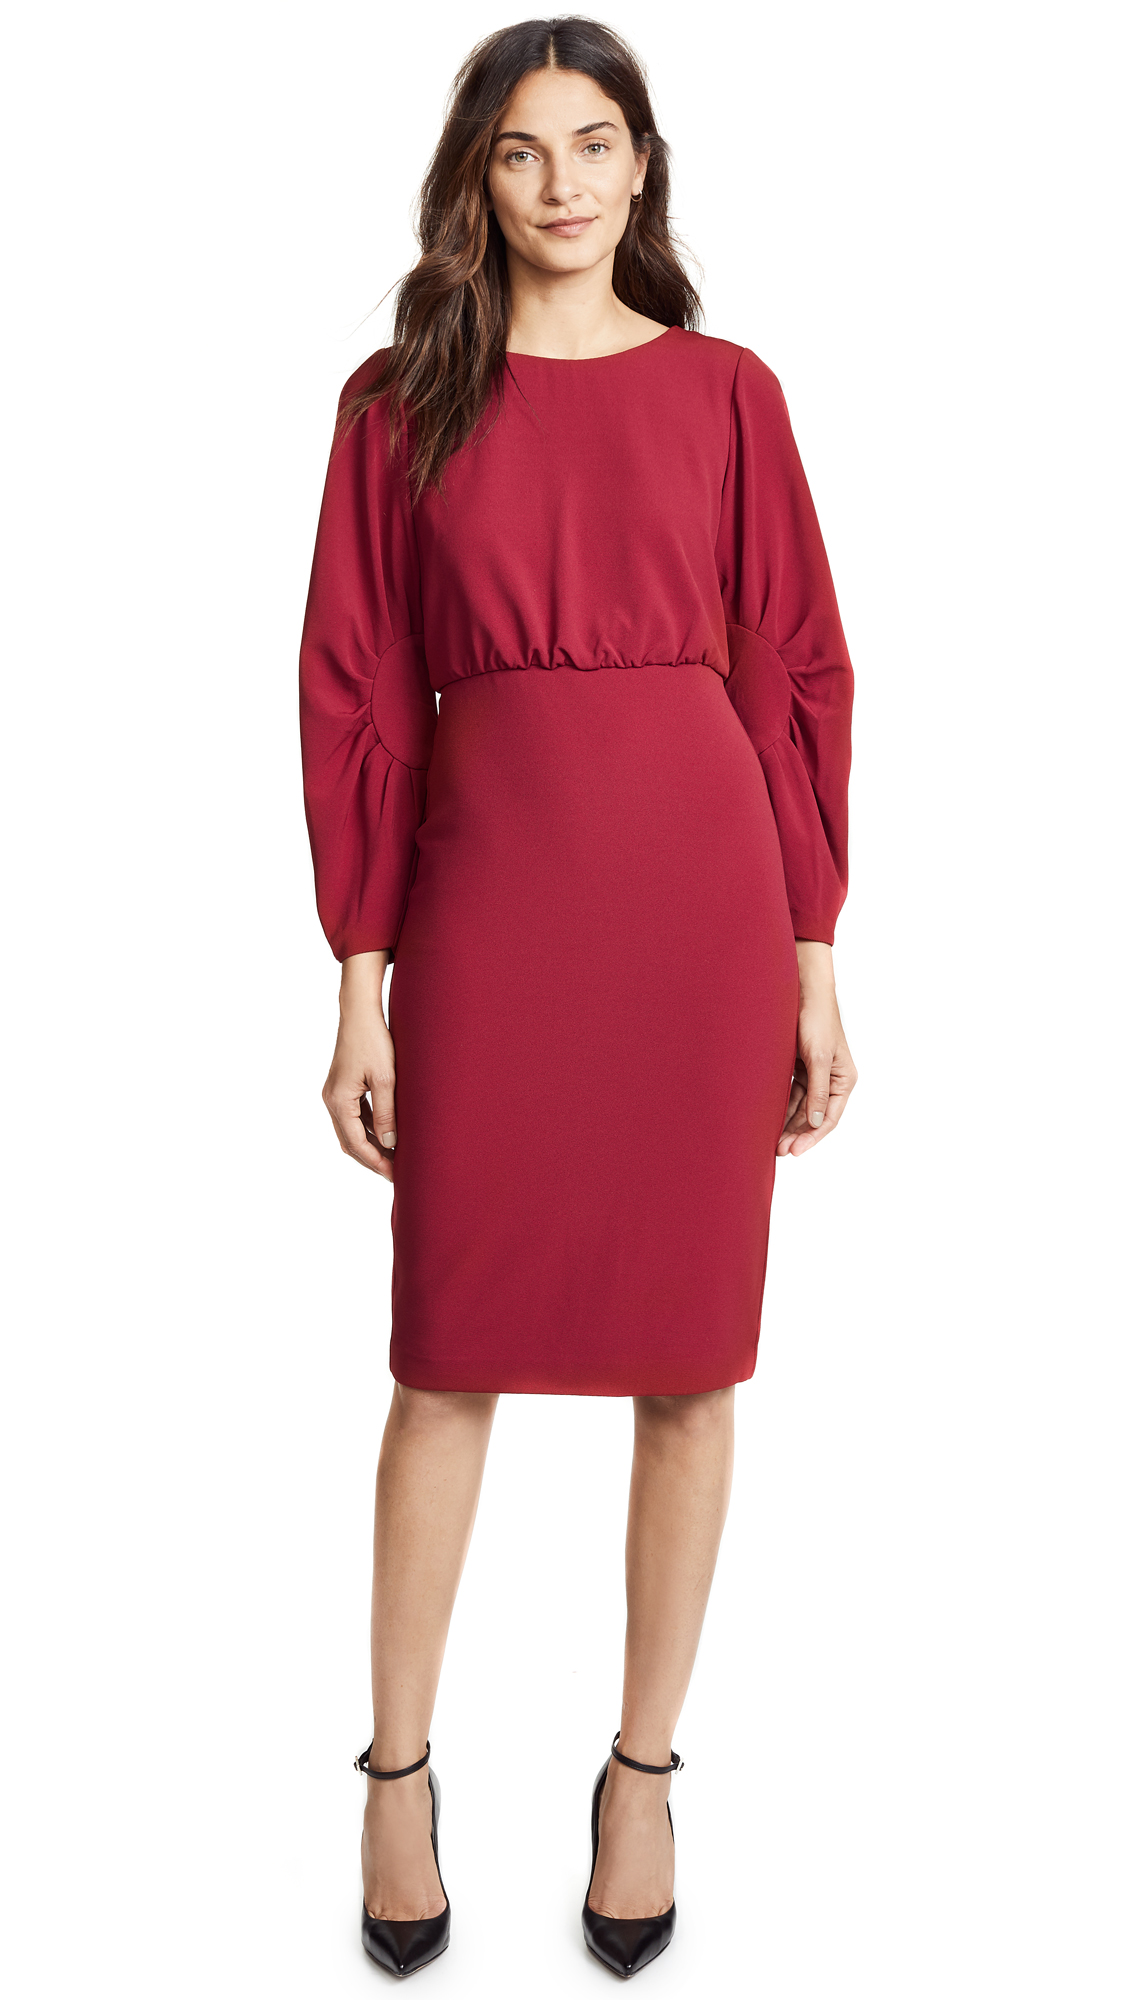 Badgley Mischka Collection Crew Neck Dress - Ruby